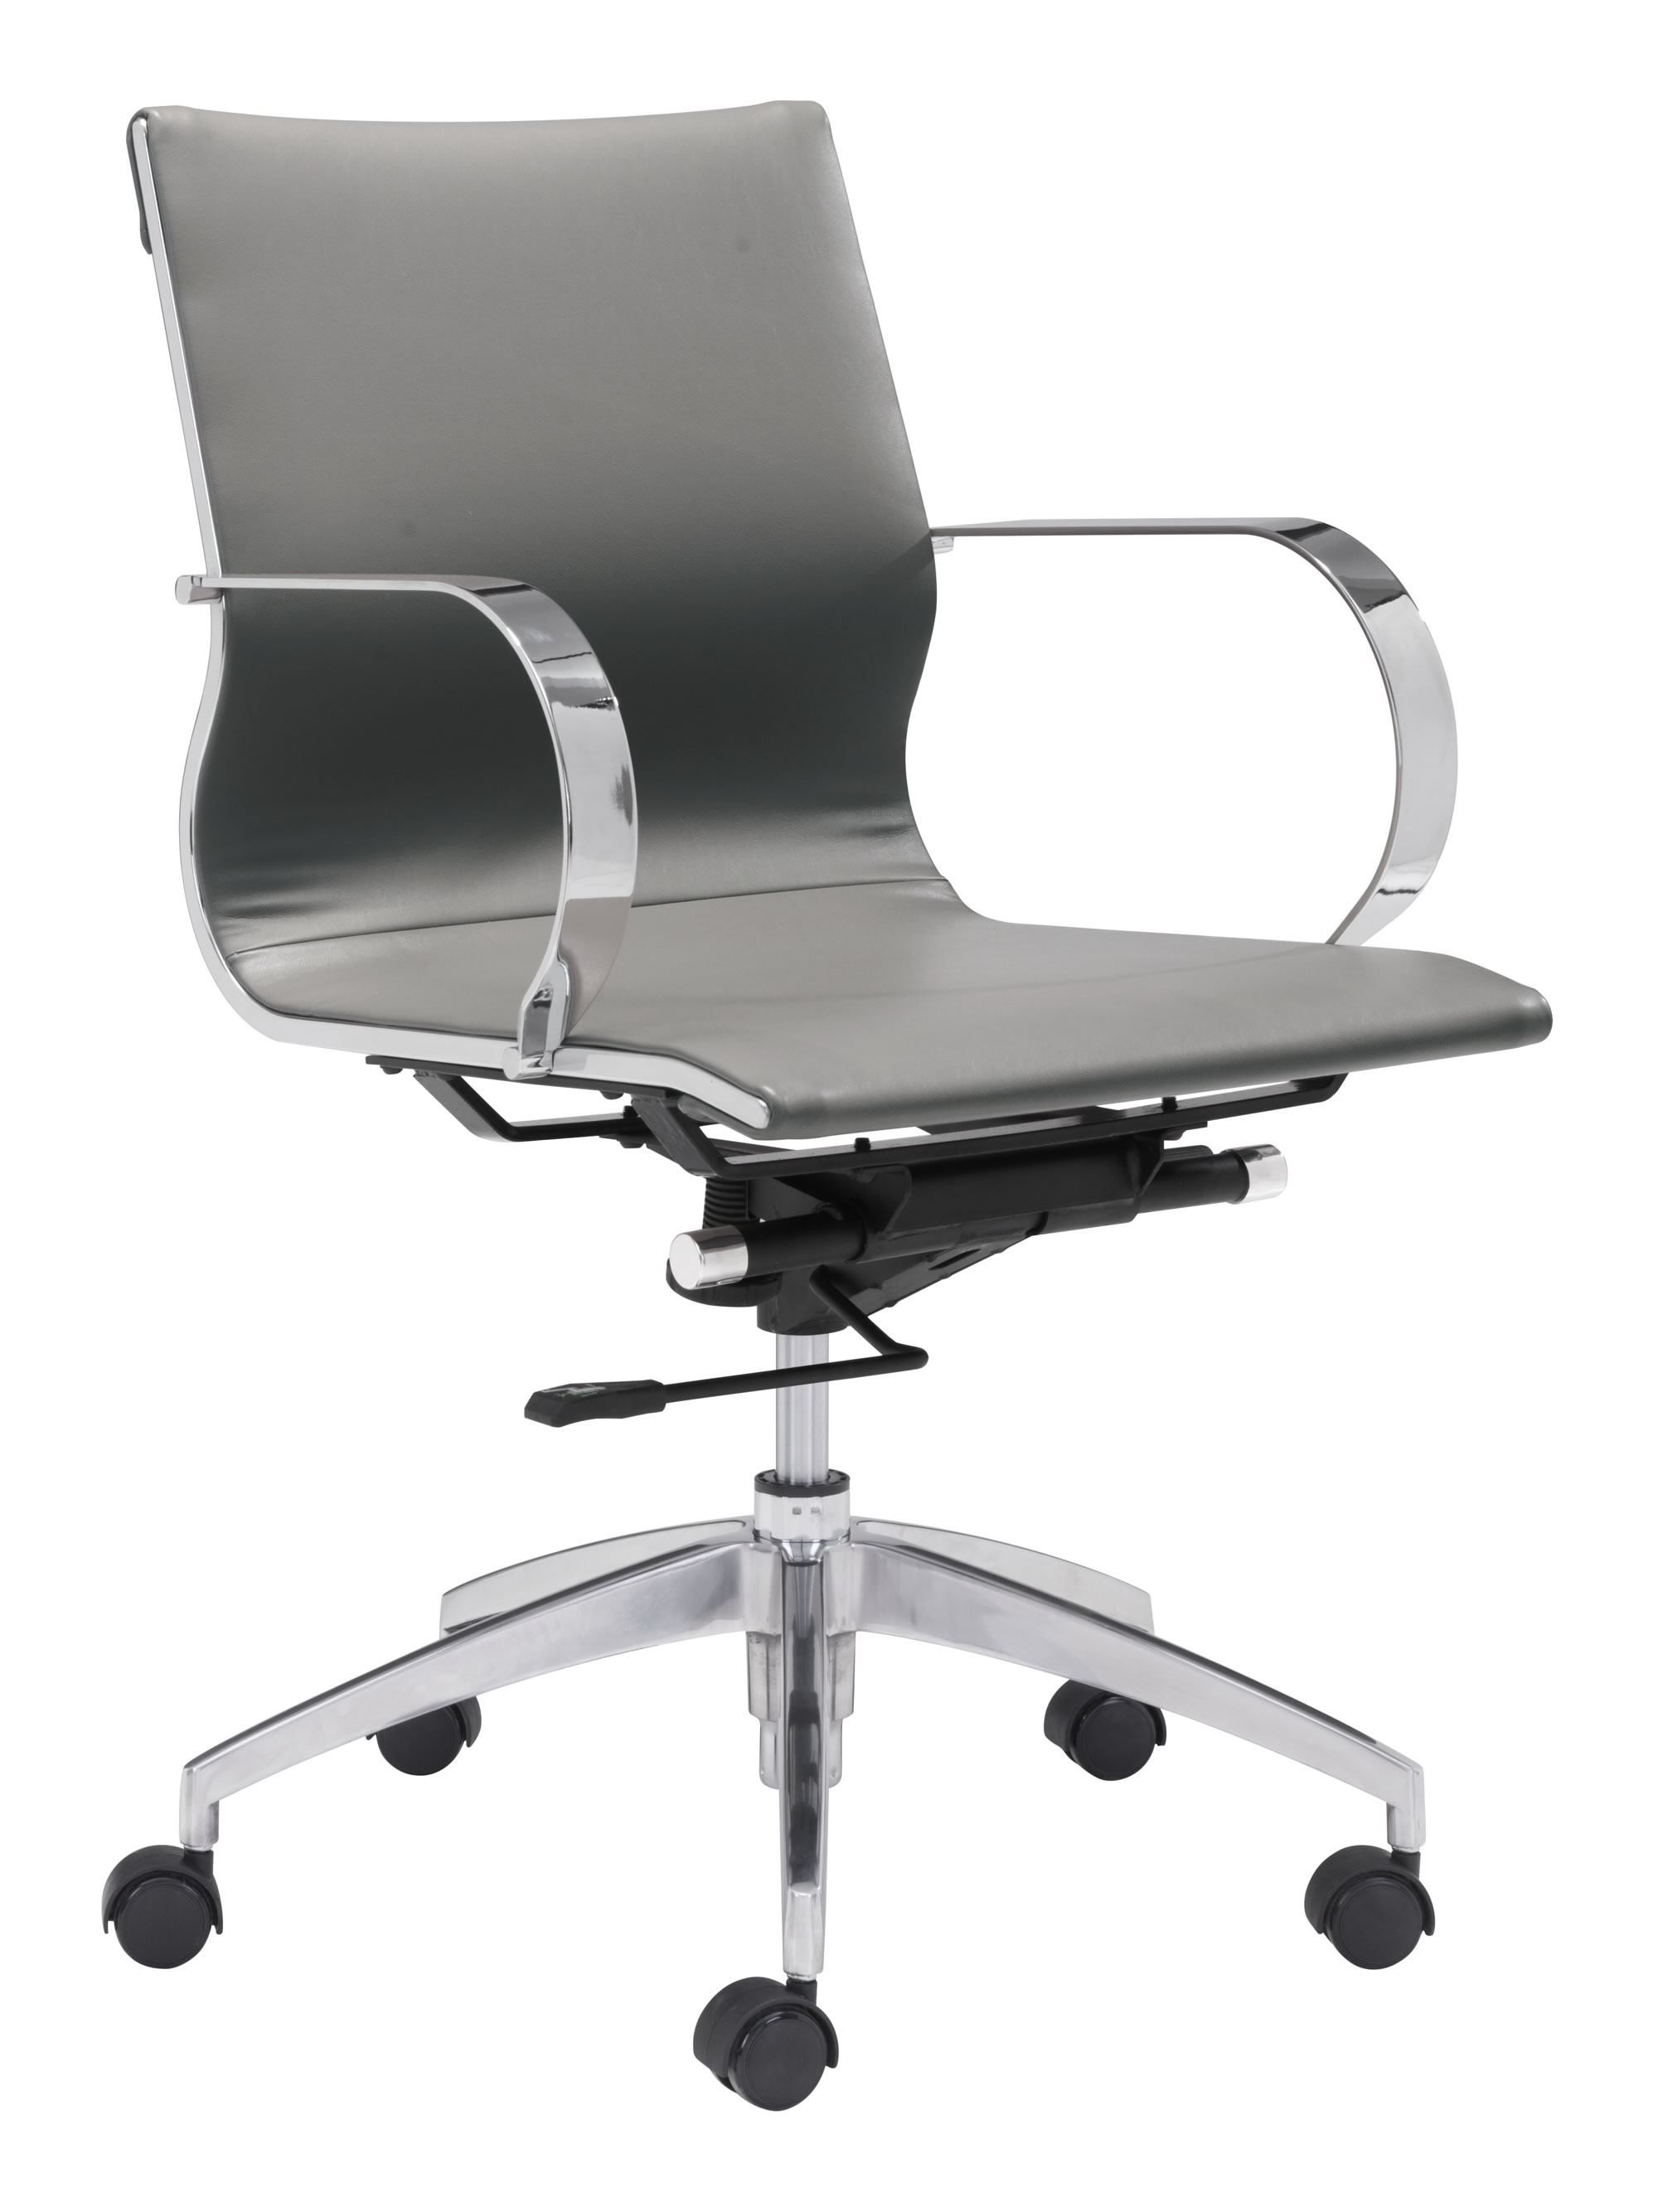 """27.6"""" x 27.6"""" x 33.9"""" Gray, Leatherette, Chromed Steel, Low Back Office Chair"""